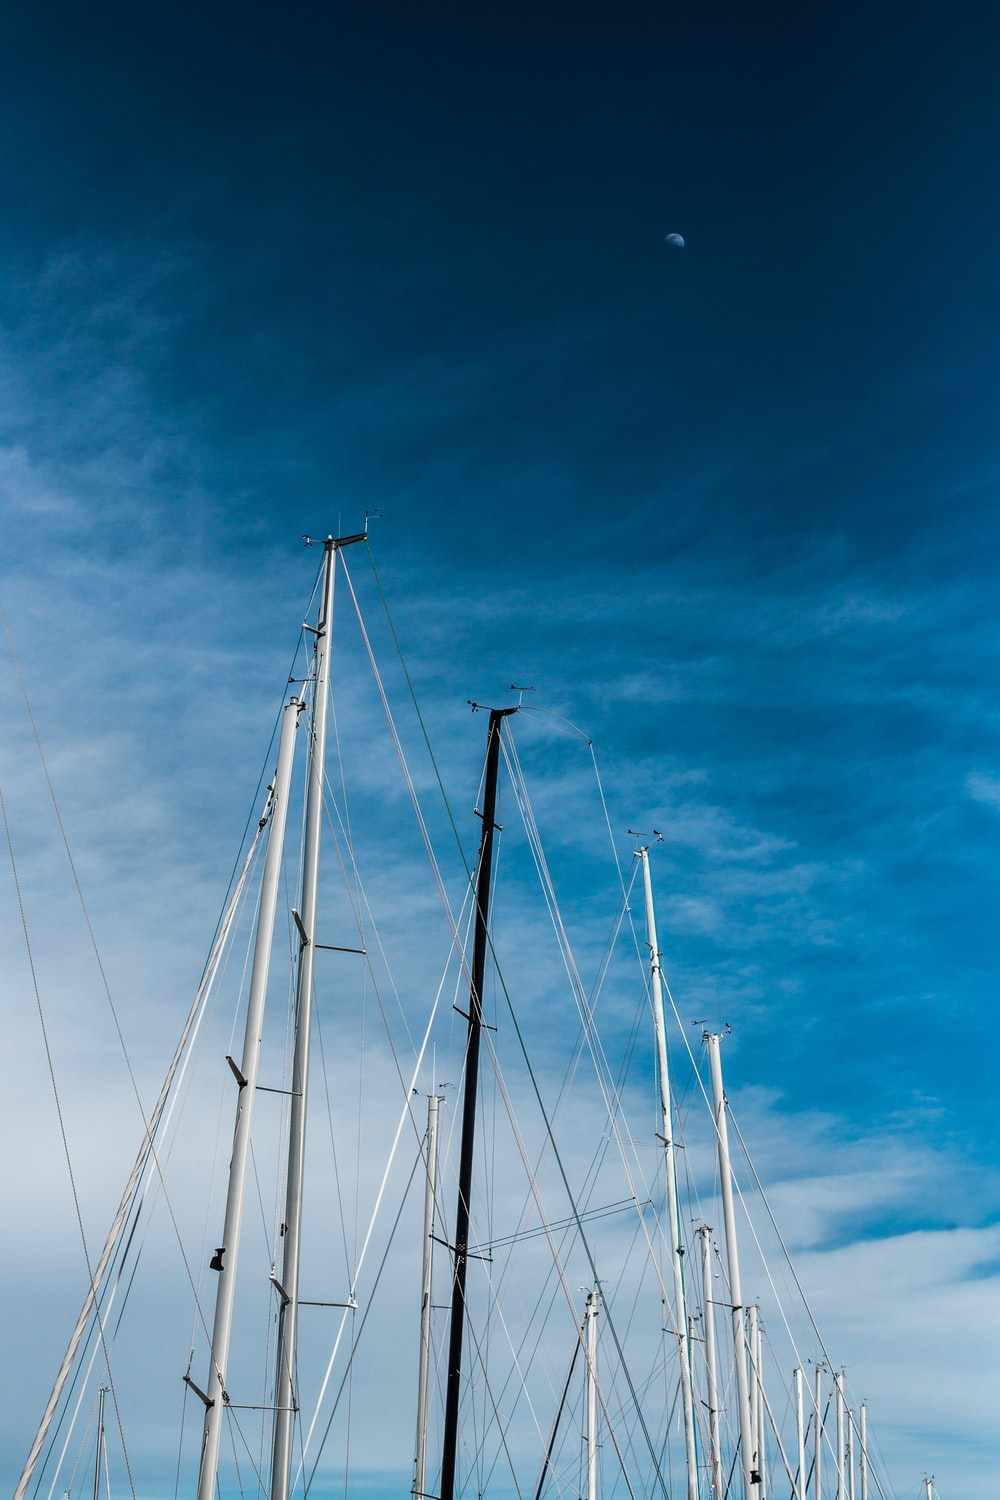 white sail boat on sea under blue sky during daytime